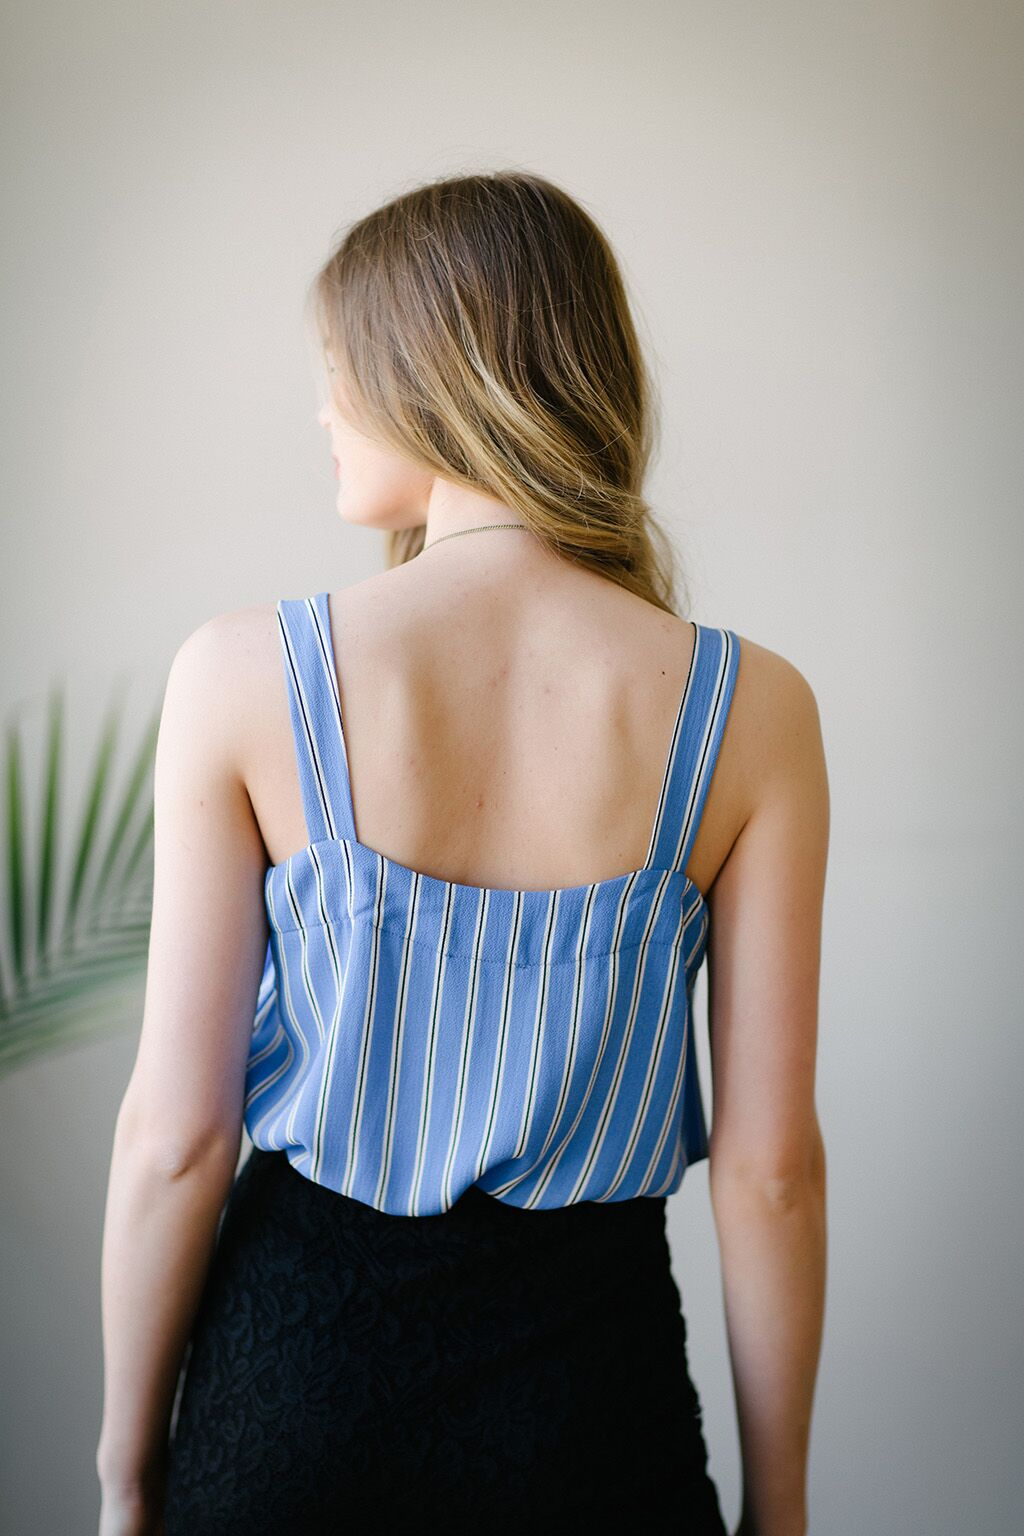 KOKOON Natalia Cami in Blue Banker's Stripe back 2